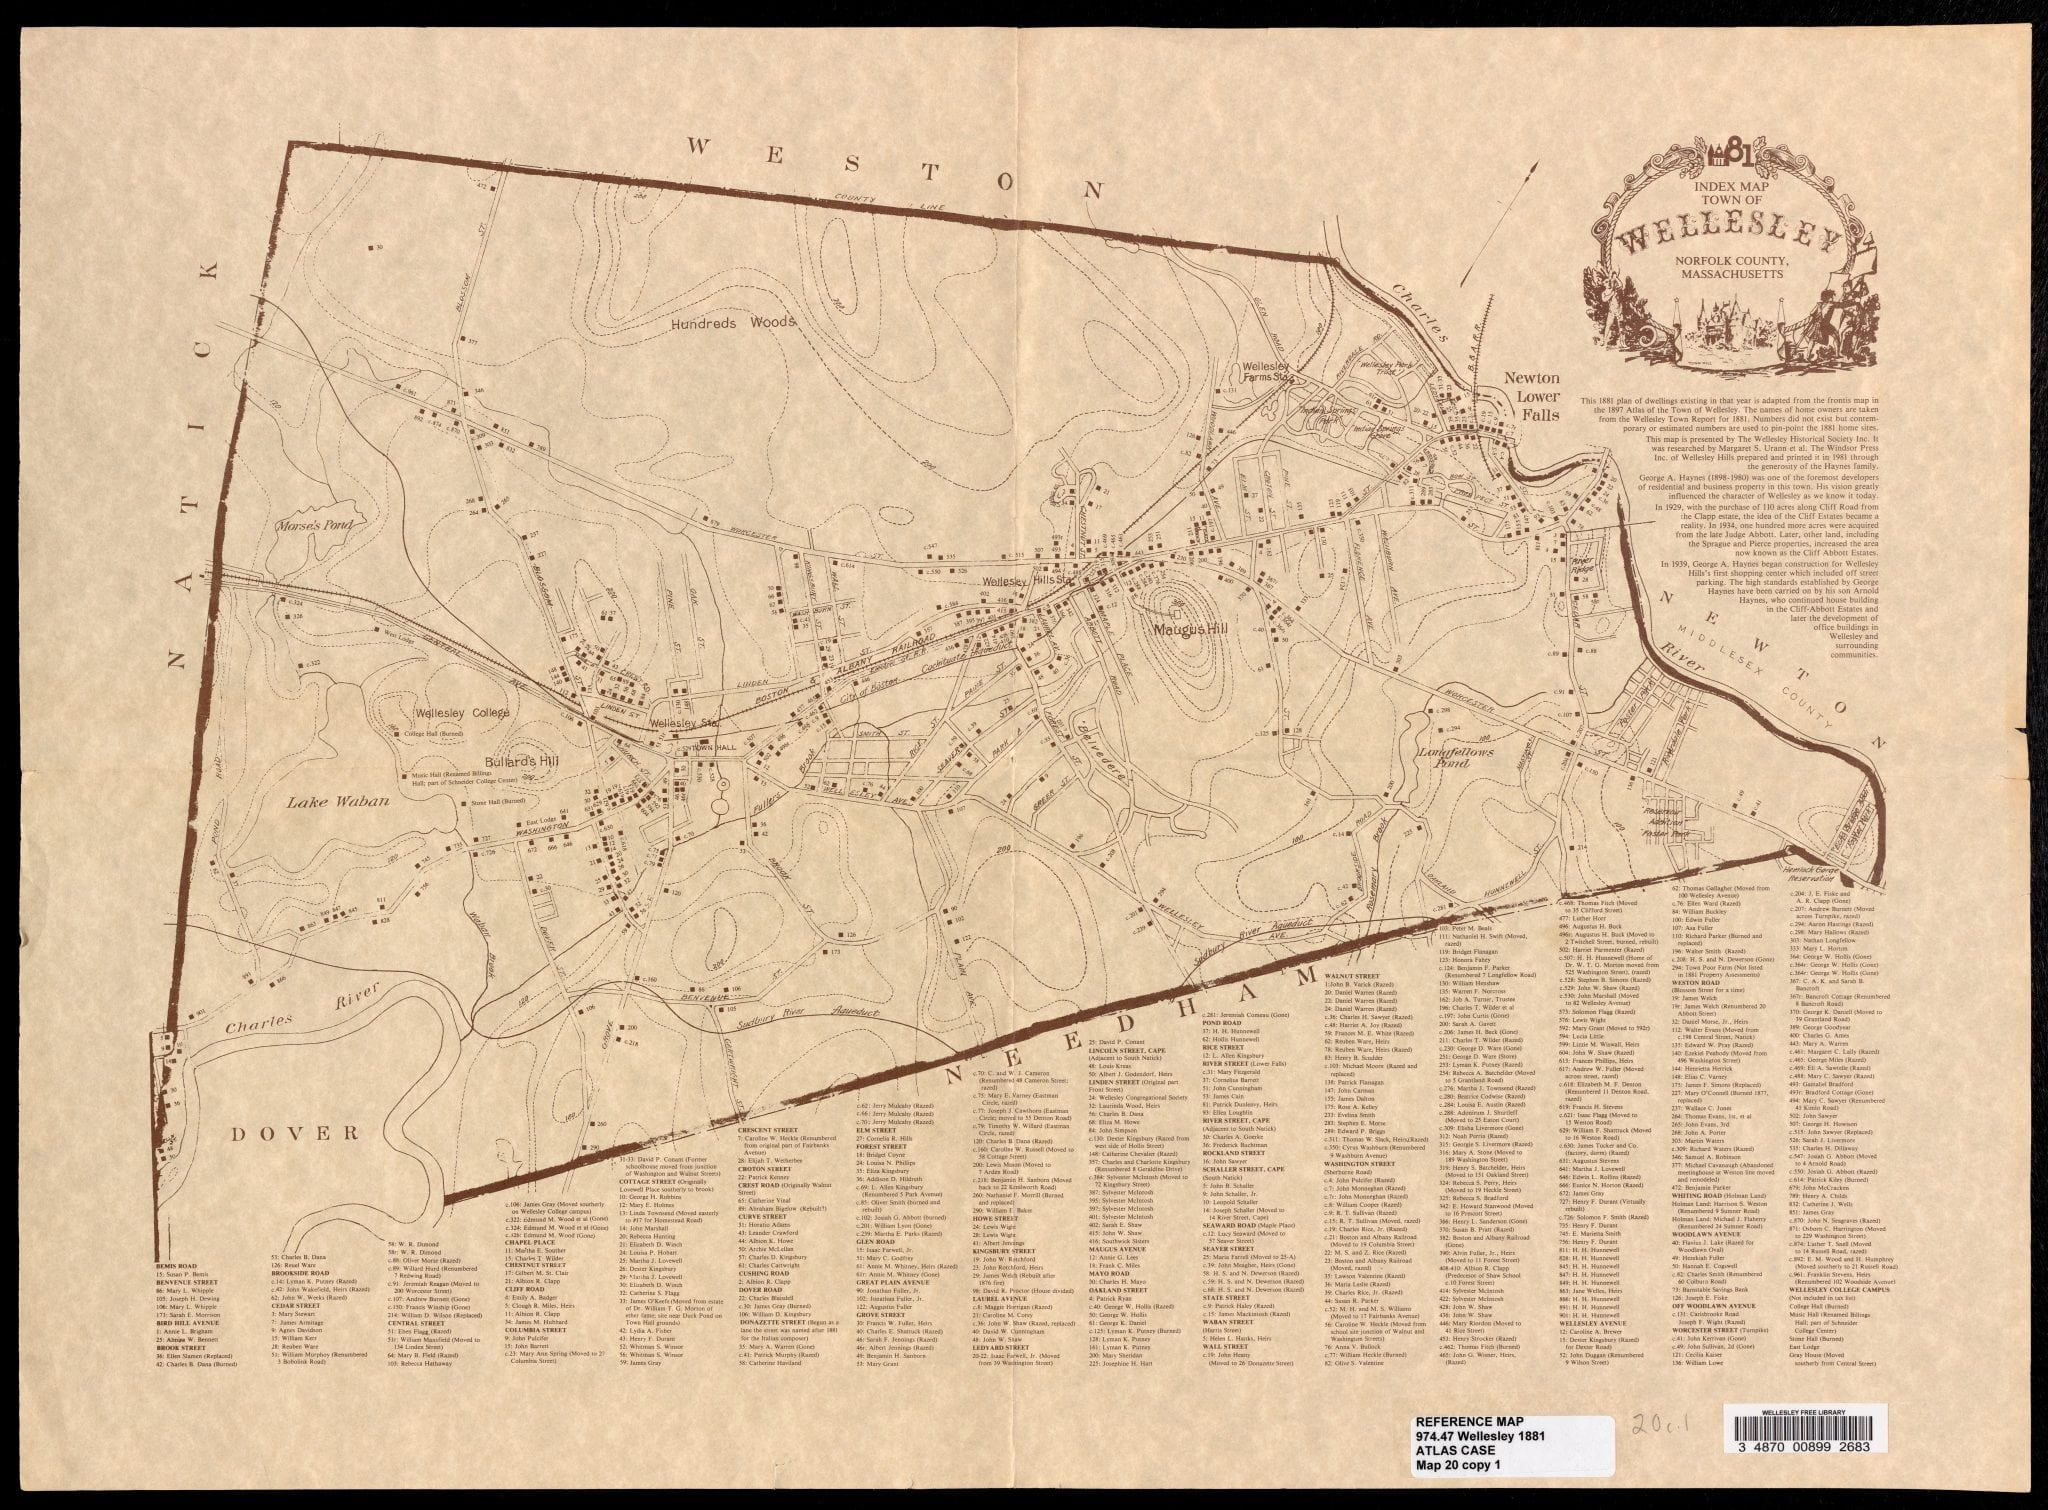 Wellesley map